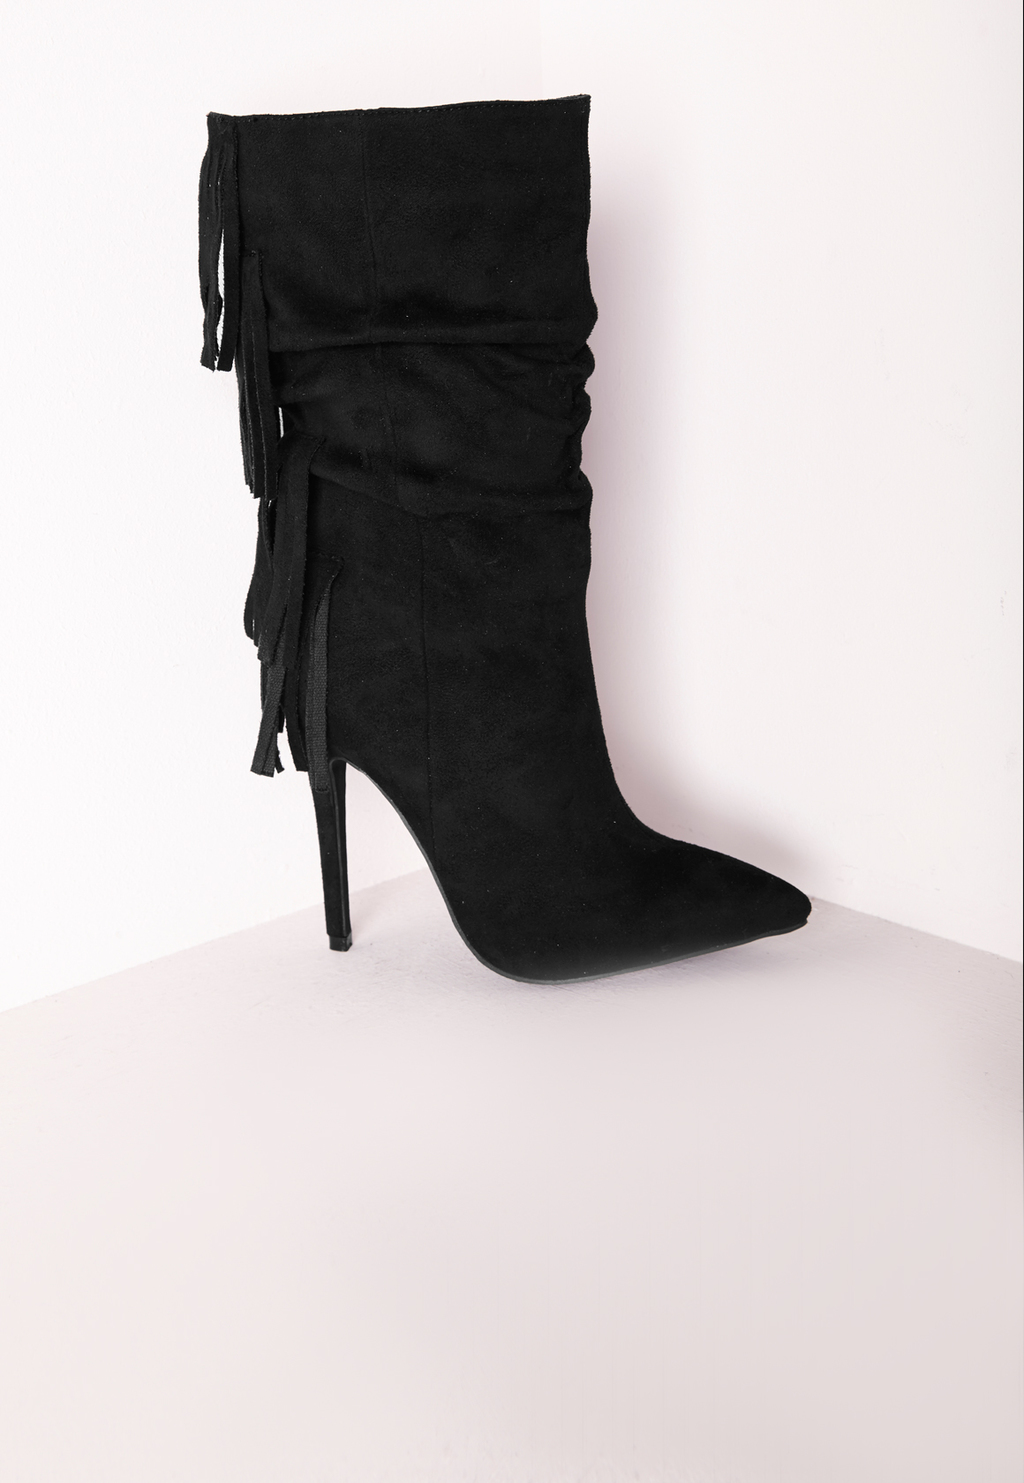 Fringed Back Ankle Boots Black, Black - predominant colour: black; heel height: high; heel: stiletto; toe: pointed toe; boot length: mid calf; style: standard; finish: plain; pattern: plain; embellishment: fringing; material: faux suede; occasions: creative work; season: a/w 2015